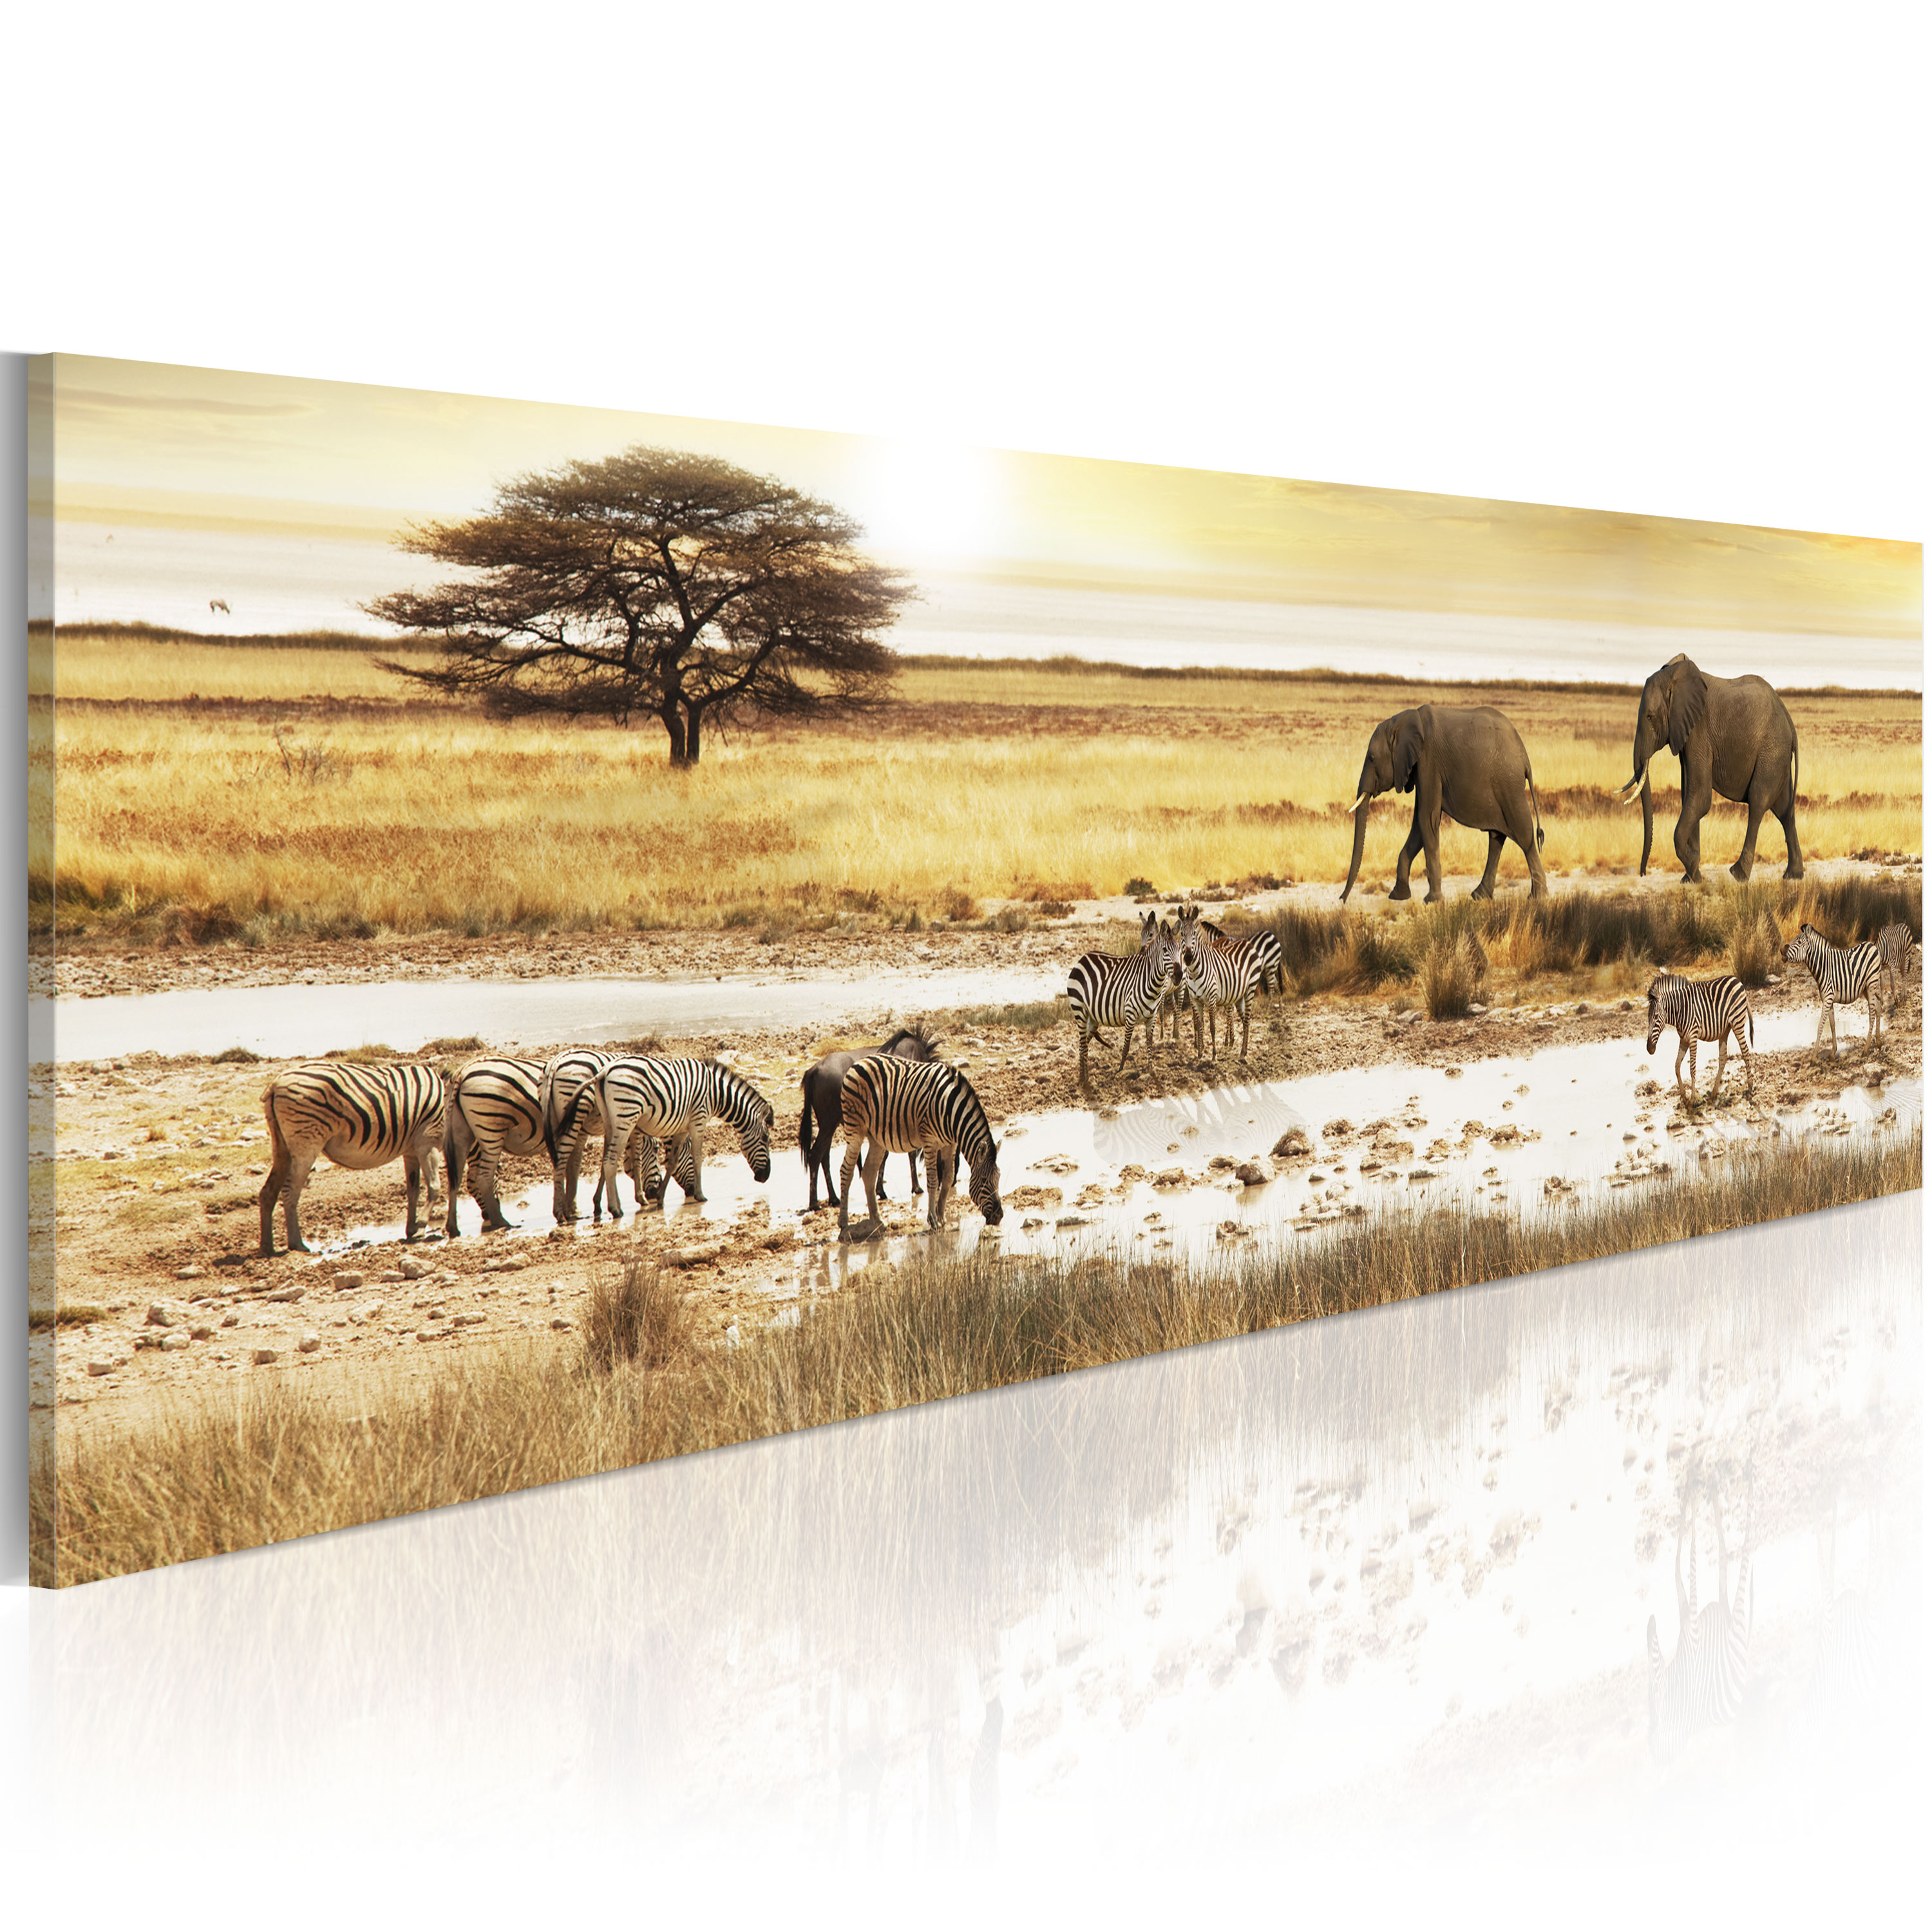 Obraz - Africa: at the waterhole 135x45